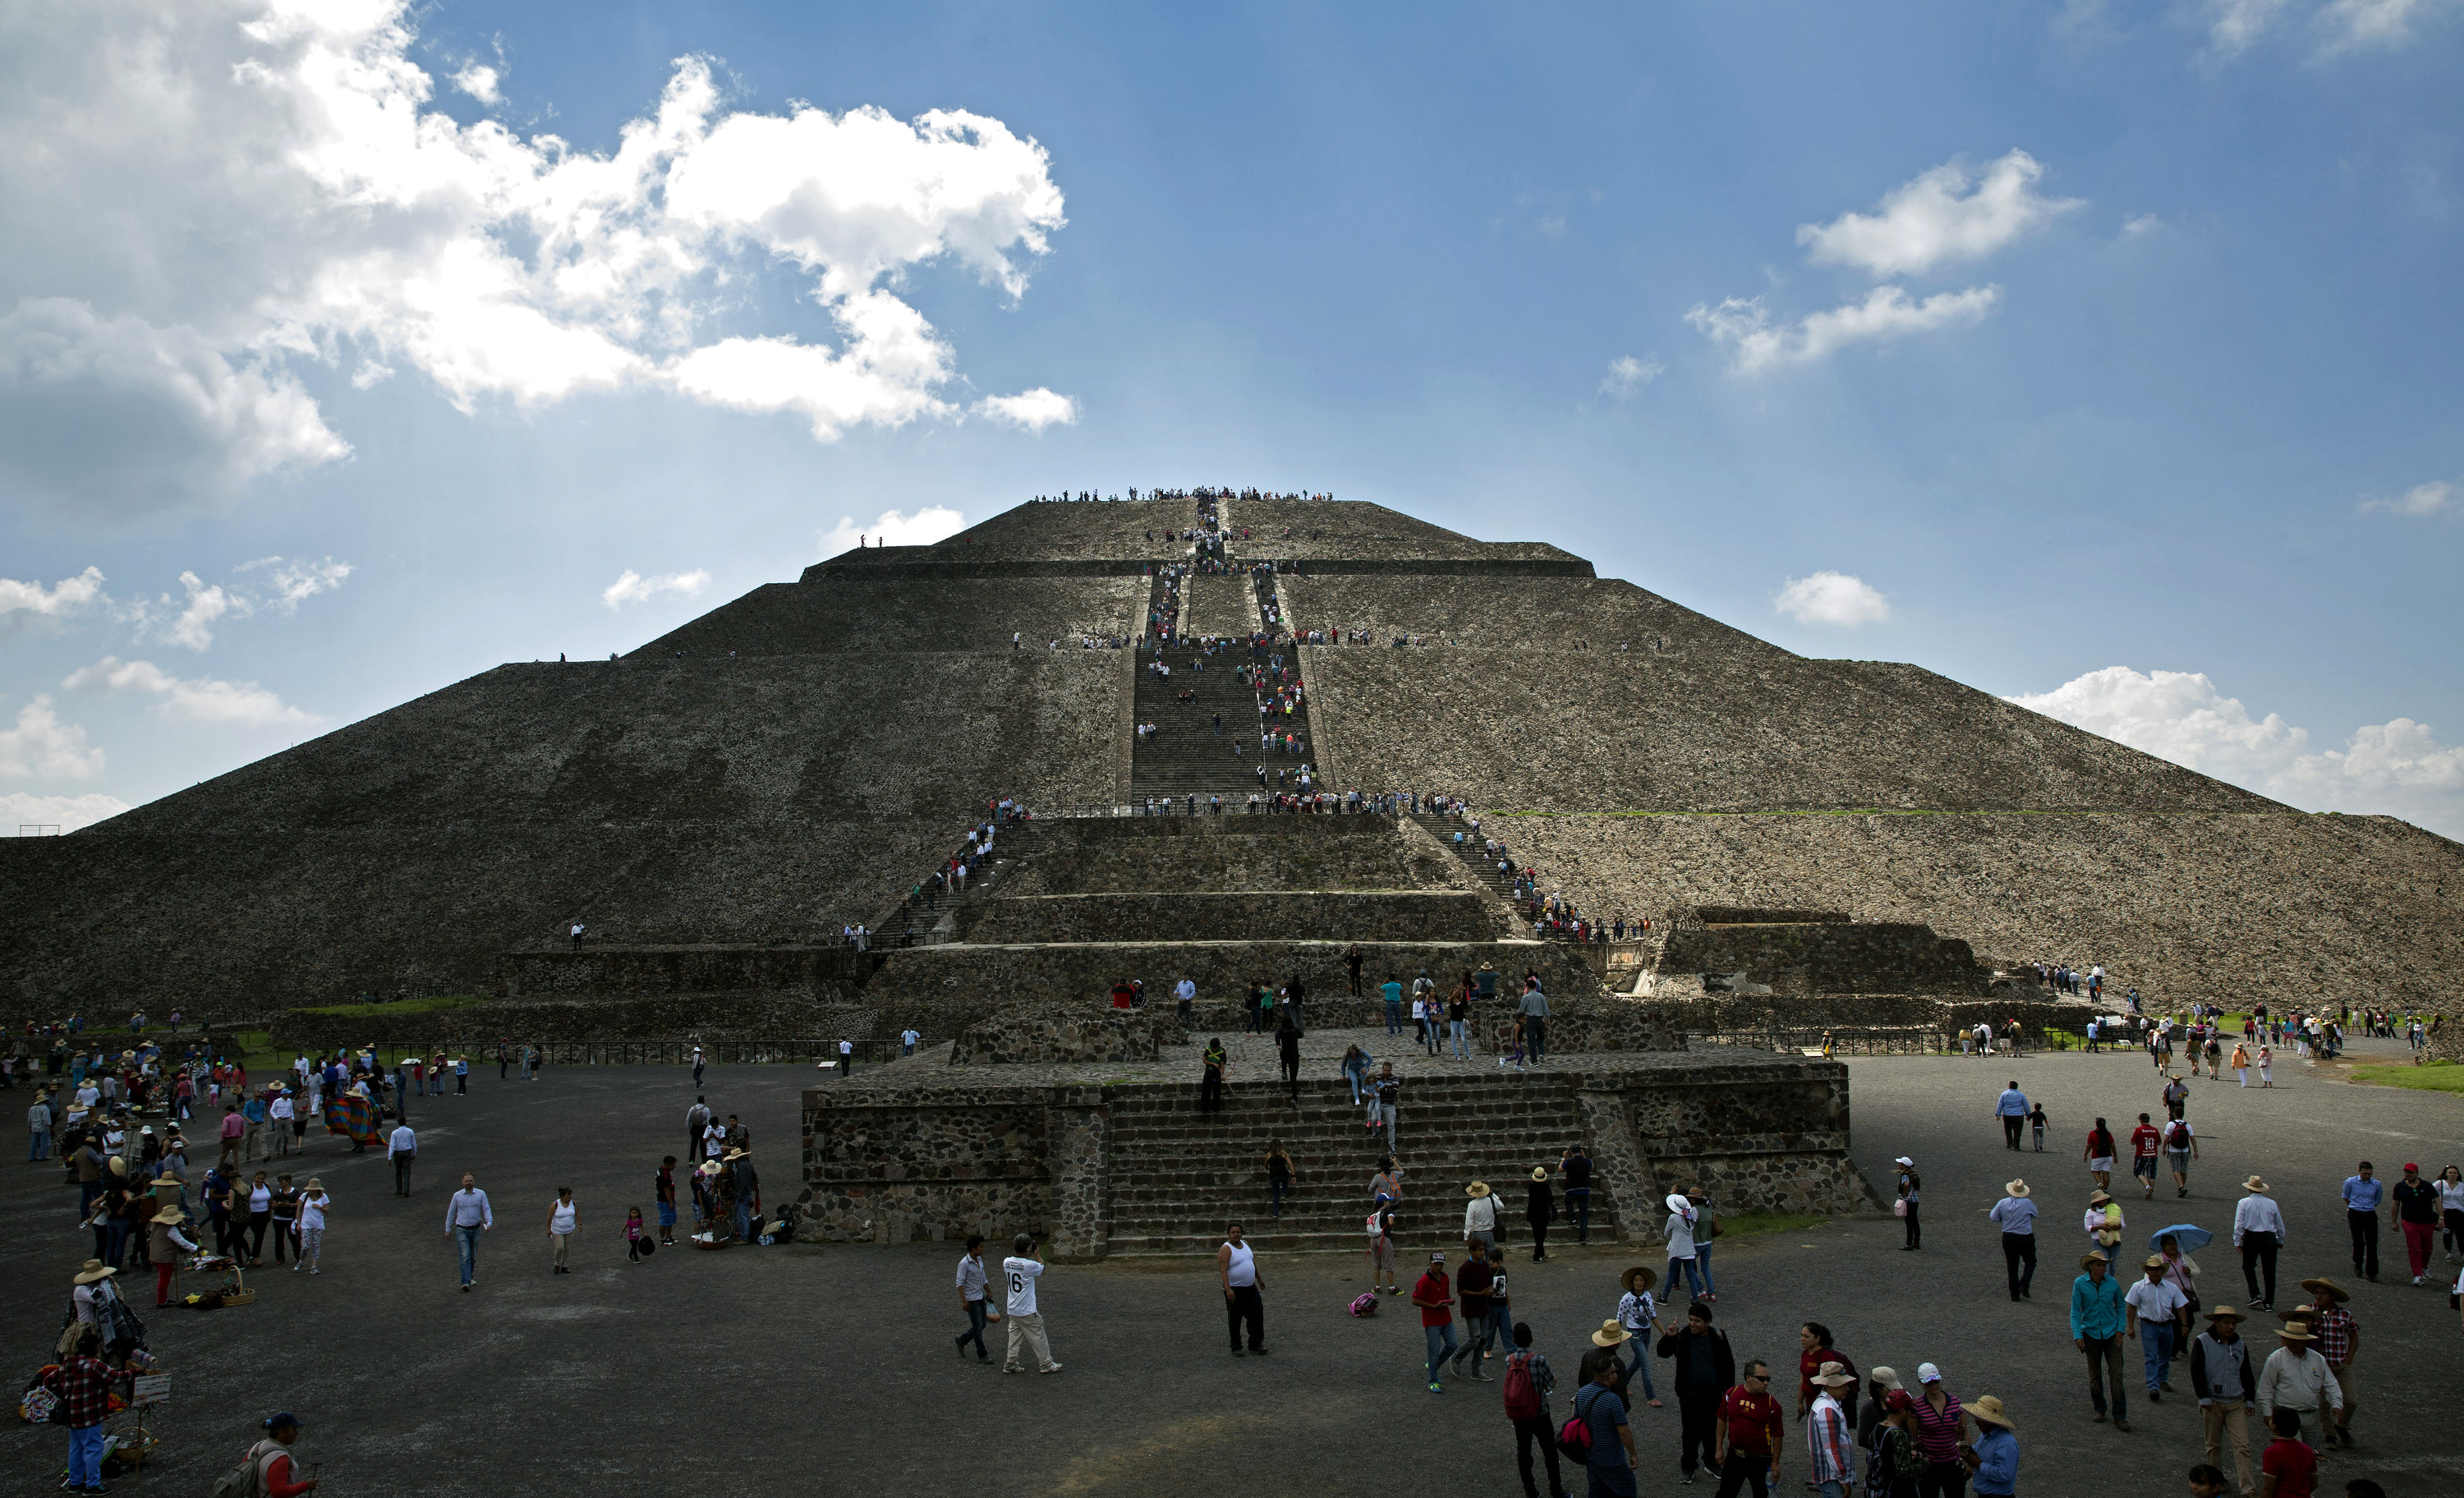 The Pyramid of the Sun in Teotihuacán, Mexico